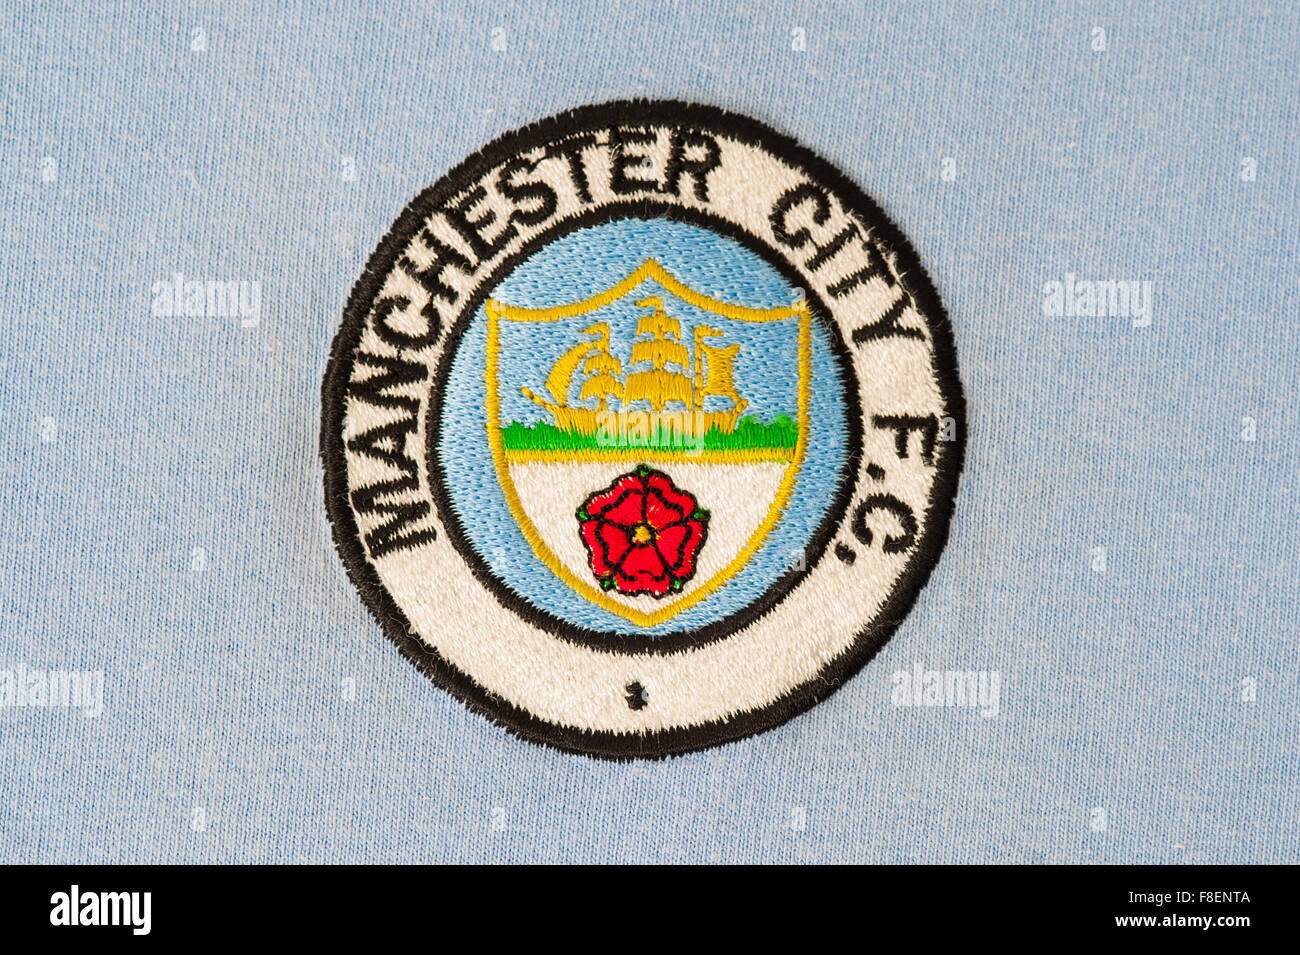 Cerca de manchester city football club crest foto imagen de stock cerca de manchester city football club crest voltagebd Image collections